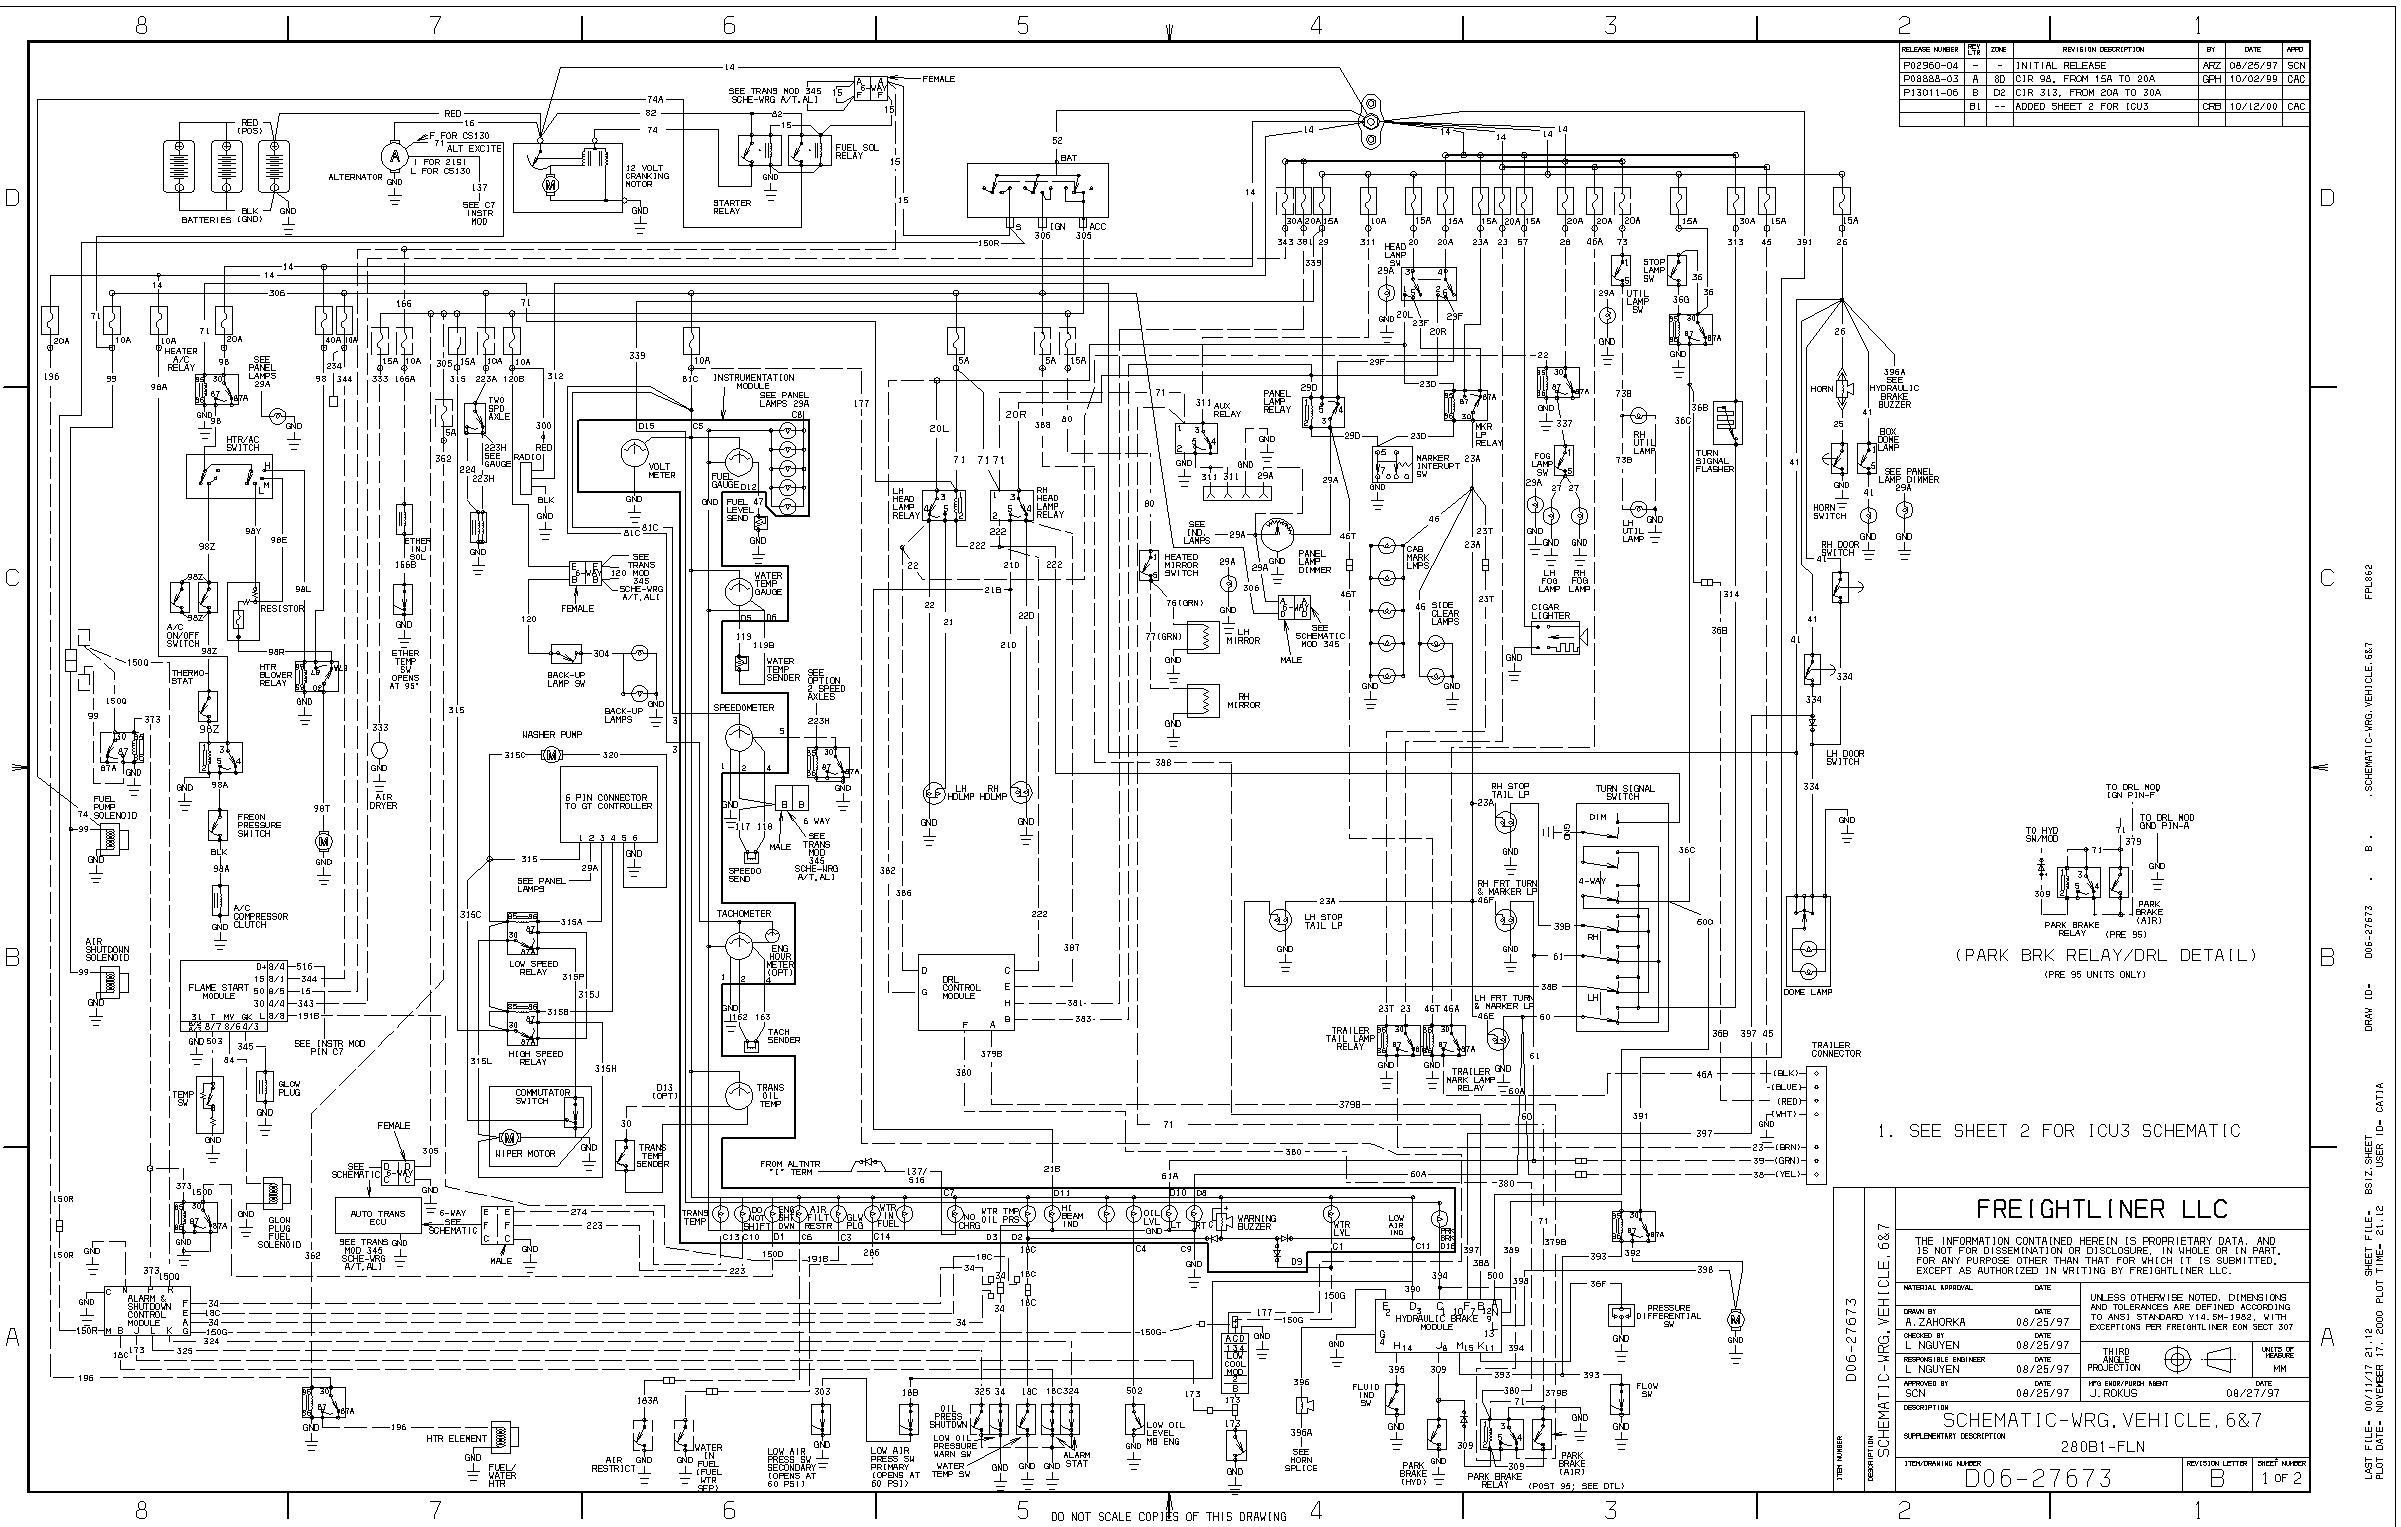 peterbilt 379 engine fan diagram wiring diagram u2022 rh msblog co Peterbilt 379 Fuse Box Location Freightliner Wiring Fuse Box Diagram